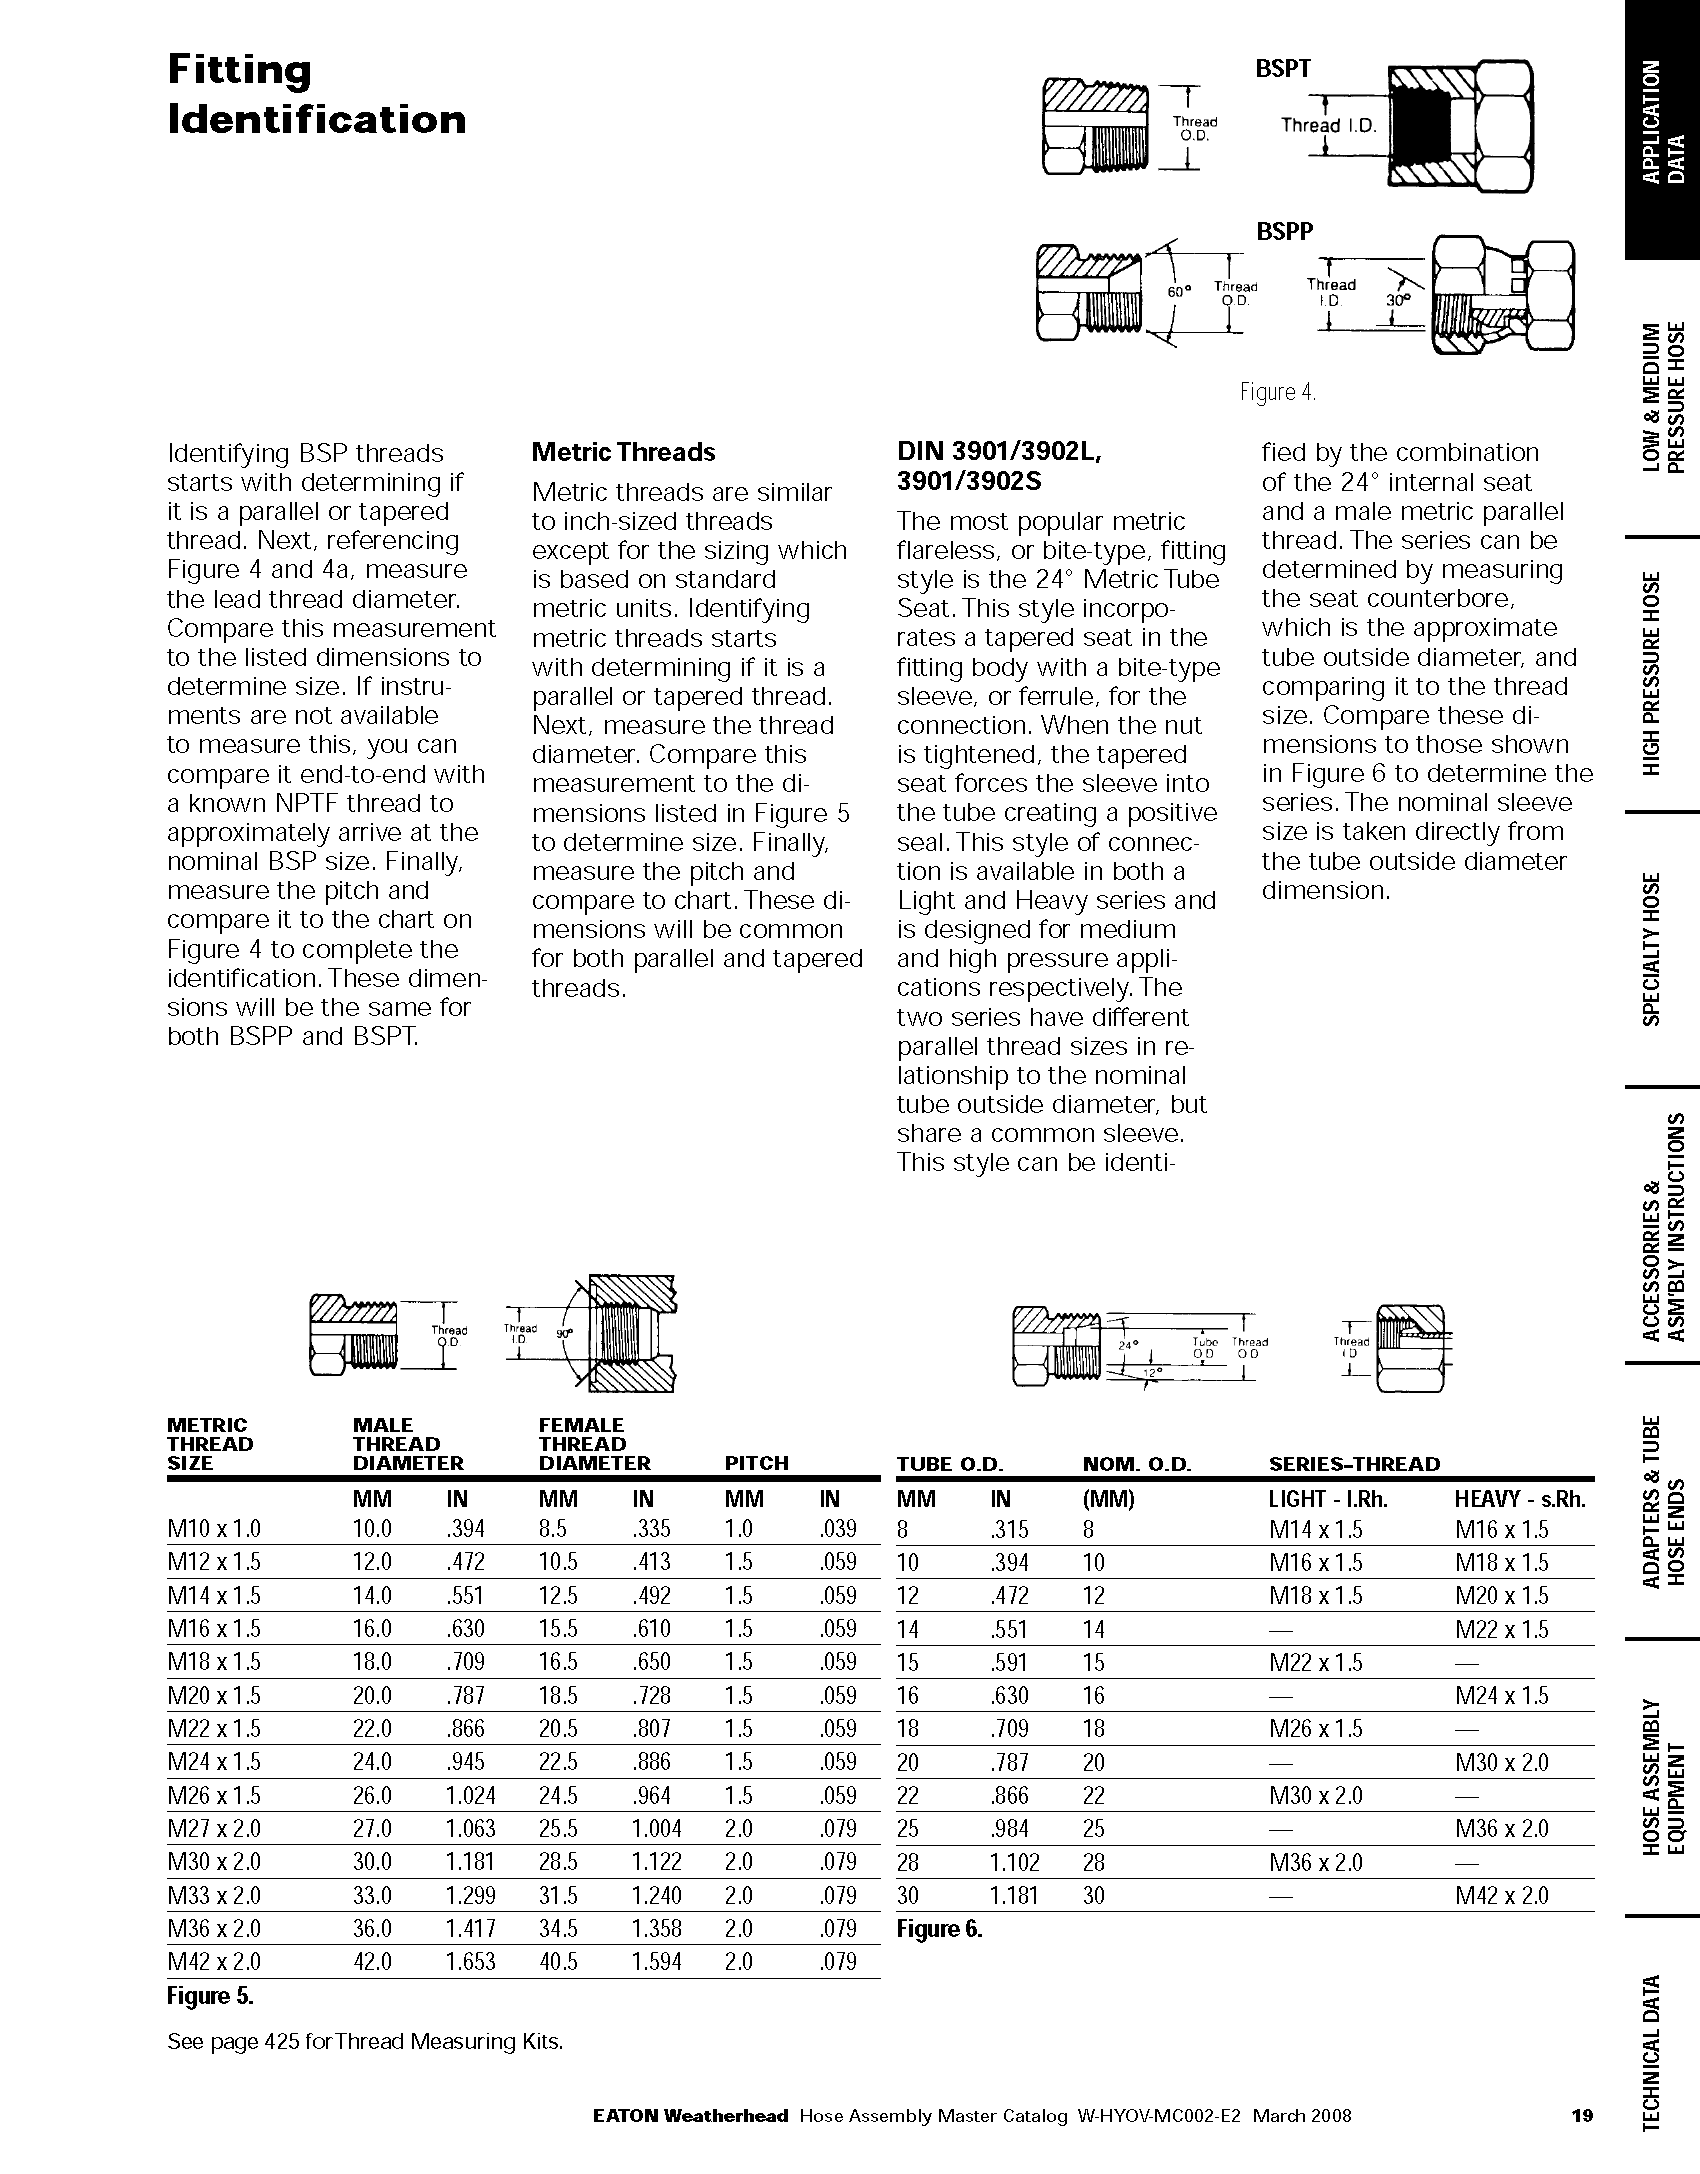 Hose selection guide Page 4